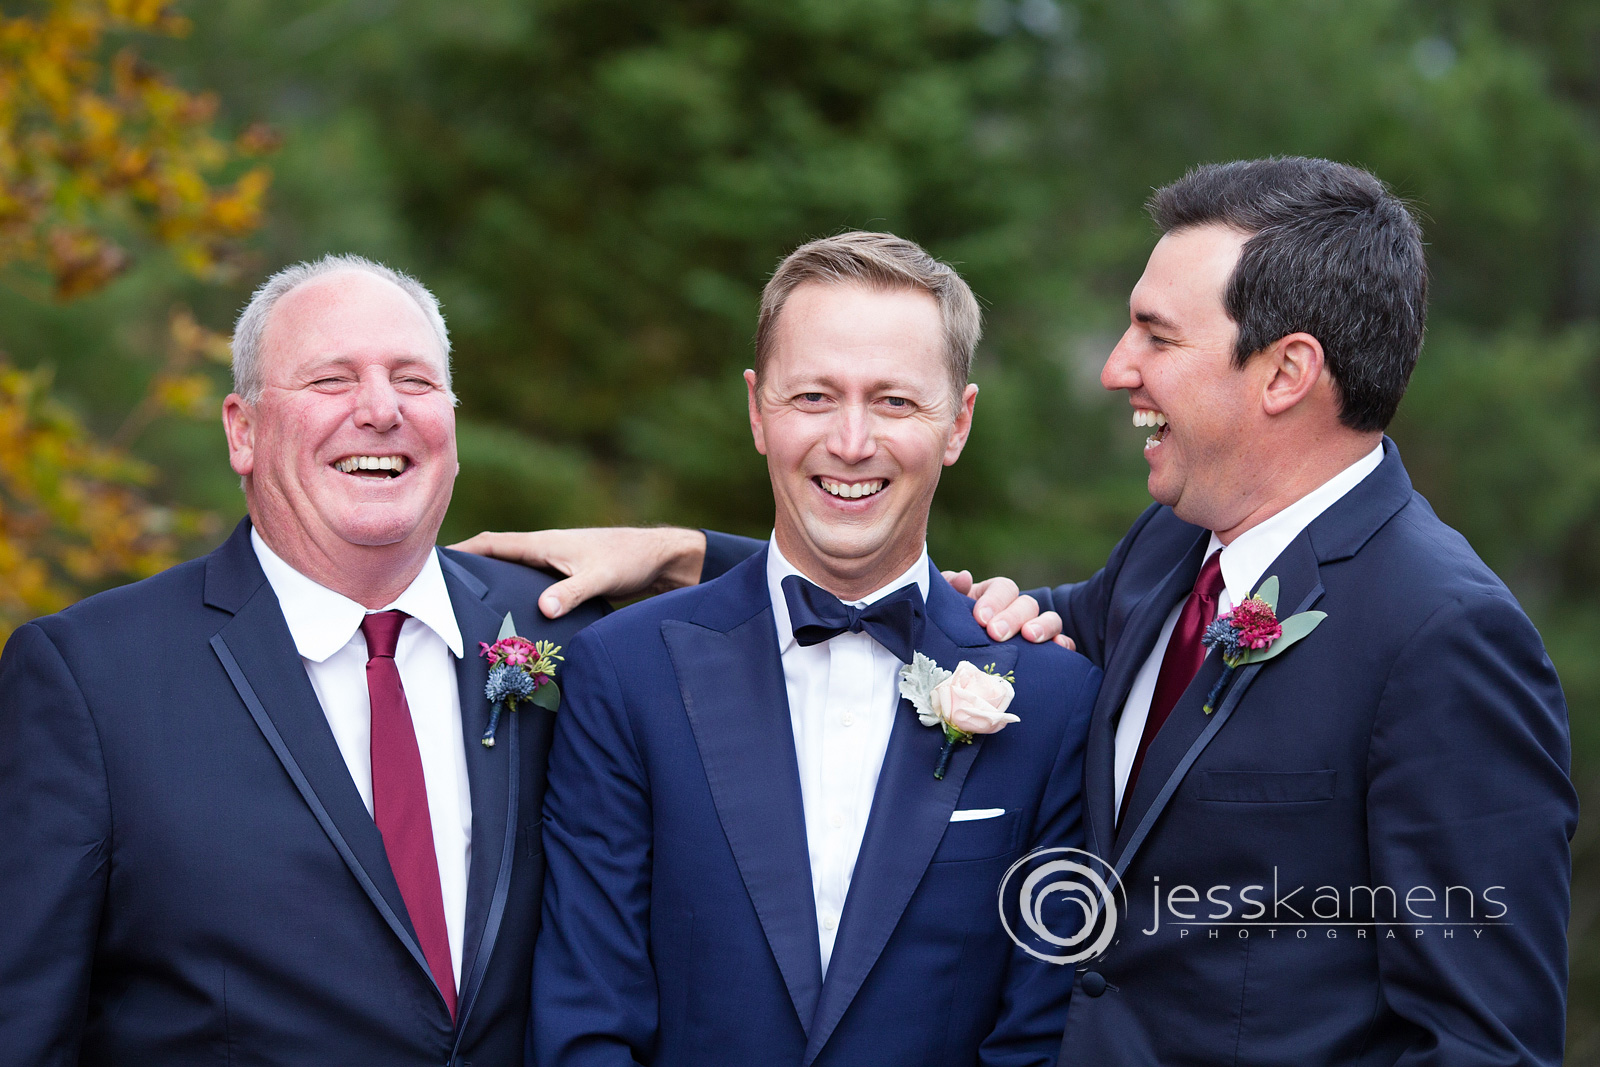 groomsman and best man laugh with their friend